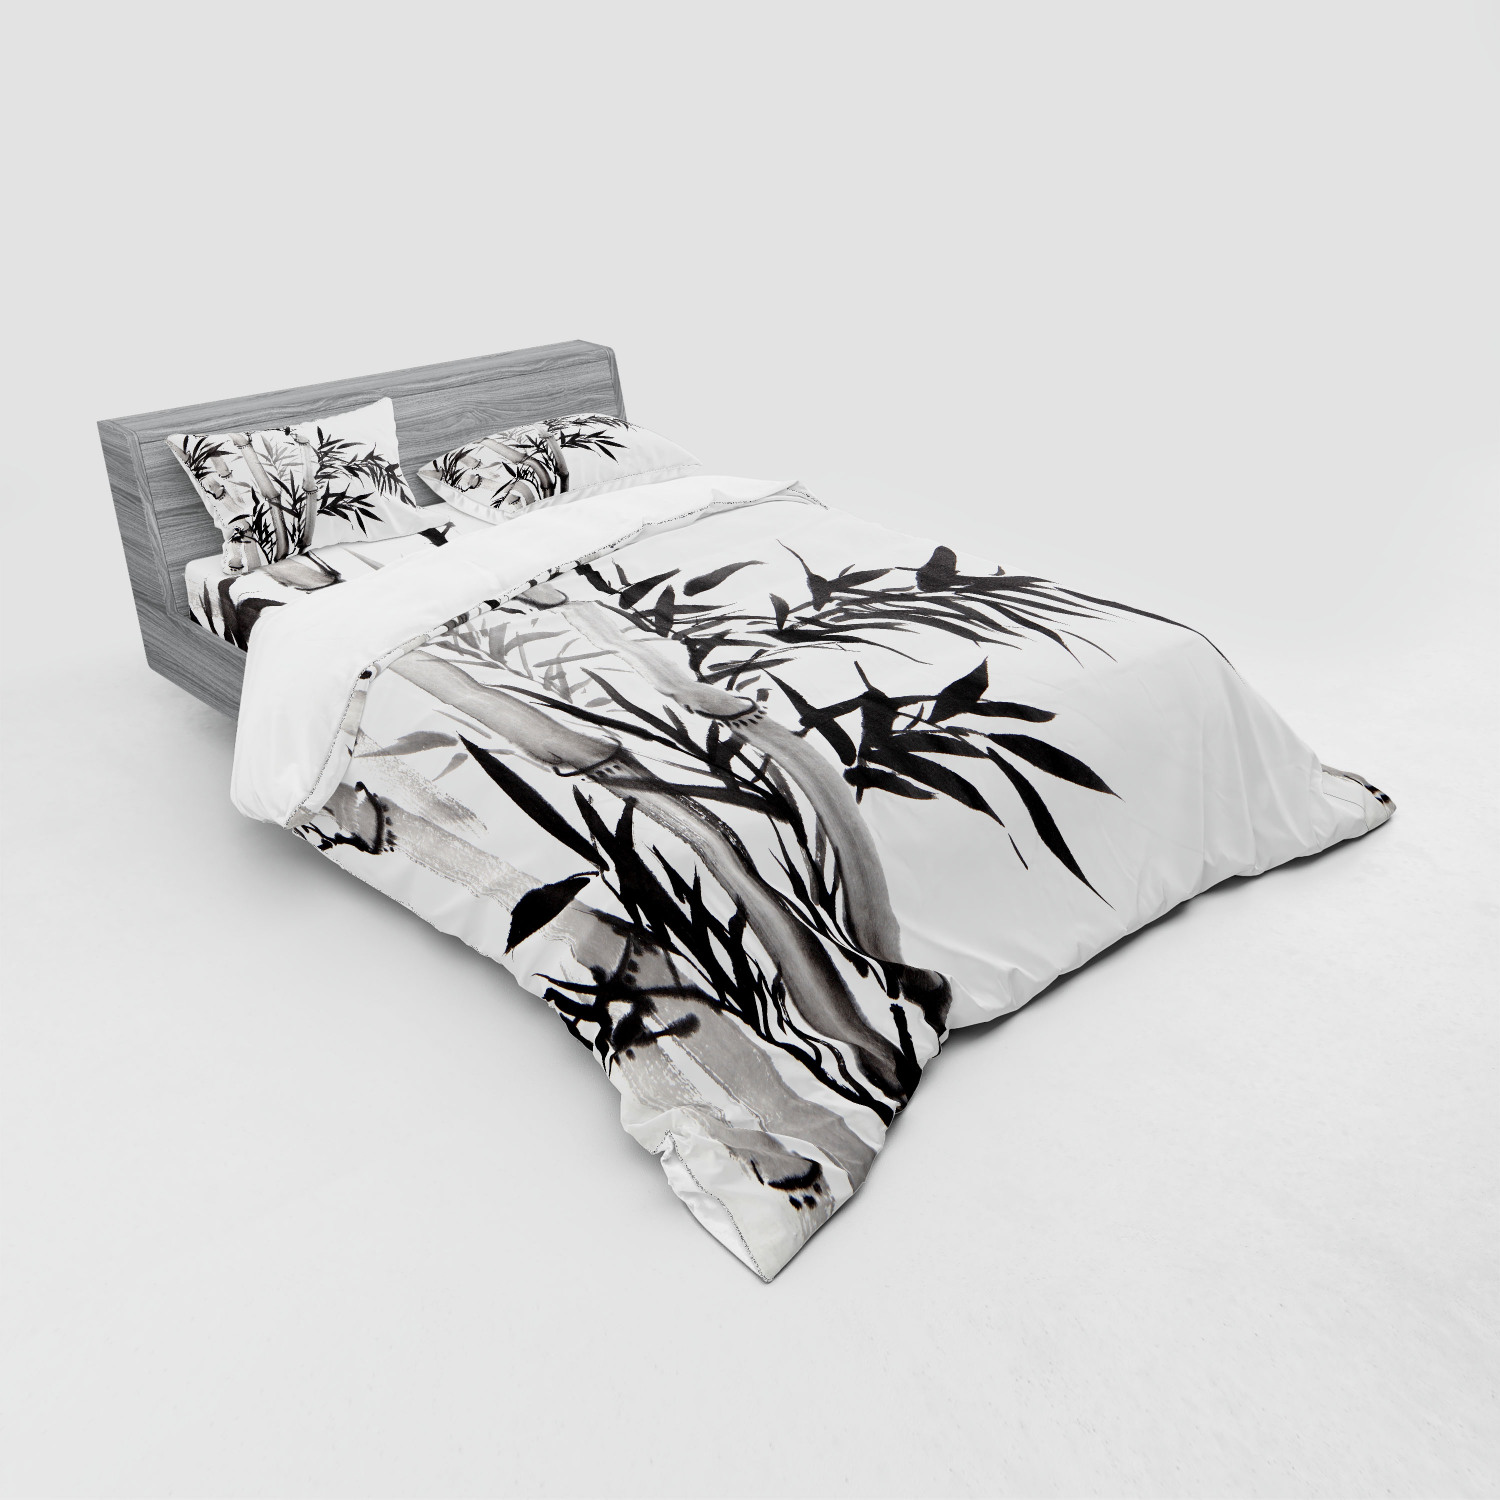 thumbnail 59 - Ambesonne Black White Art Bedding Set Duvet Cover Sham Fitted Sheet in 3 Sizes